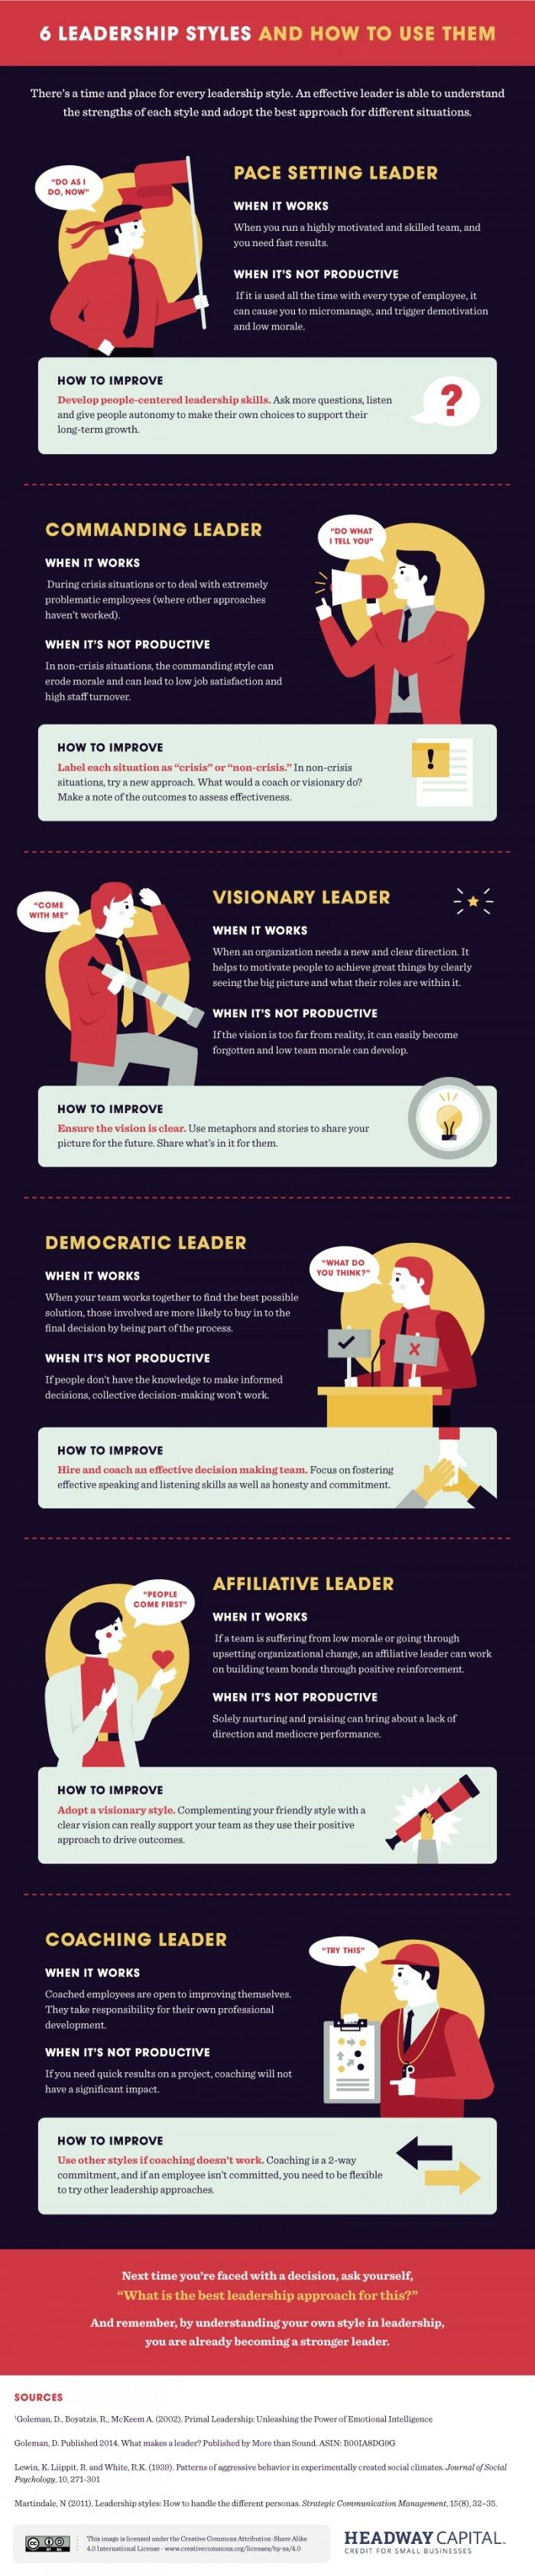 Leadership Infographic The only way to become